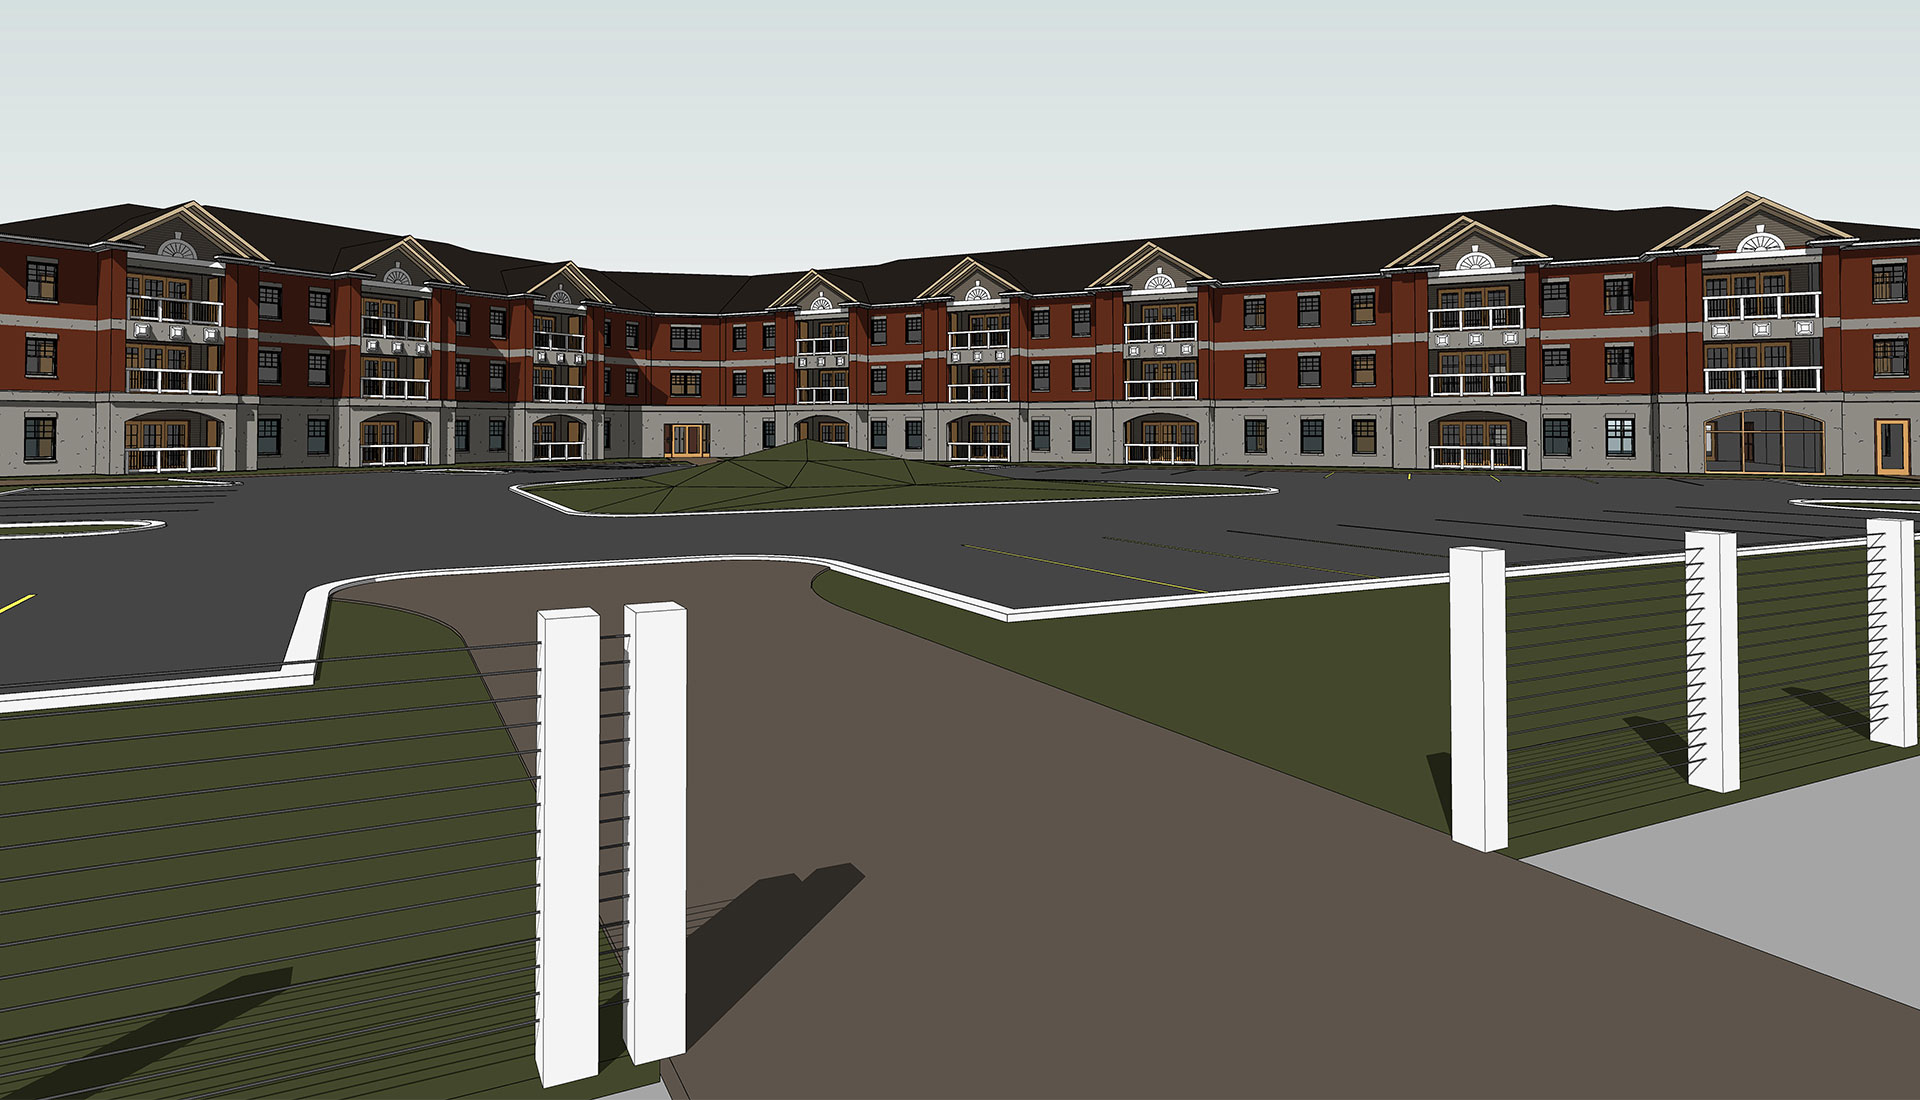 Front-View_3D-BIM-Model_Residential-Project_Architectural-Revit-Modeling-by-United-BIM